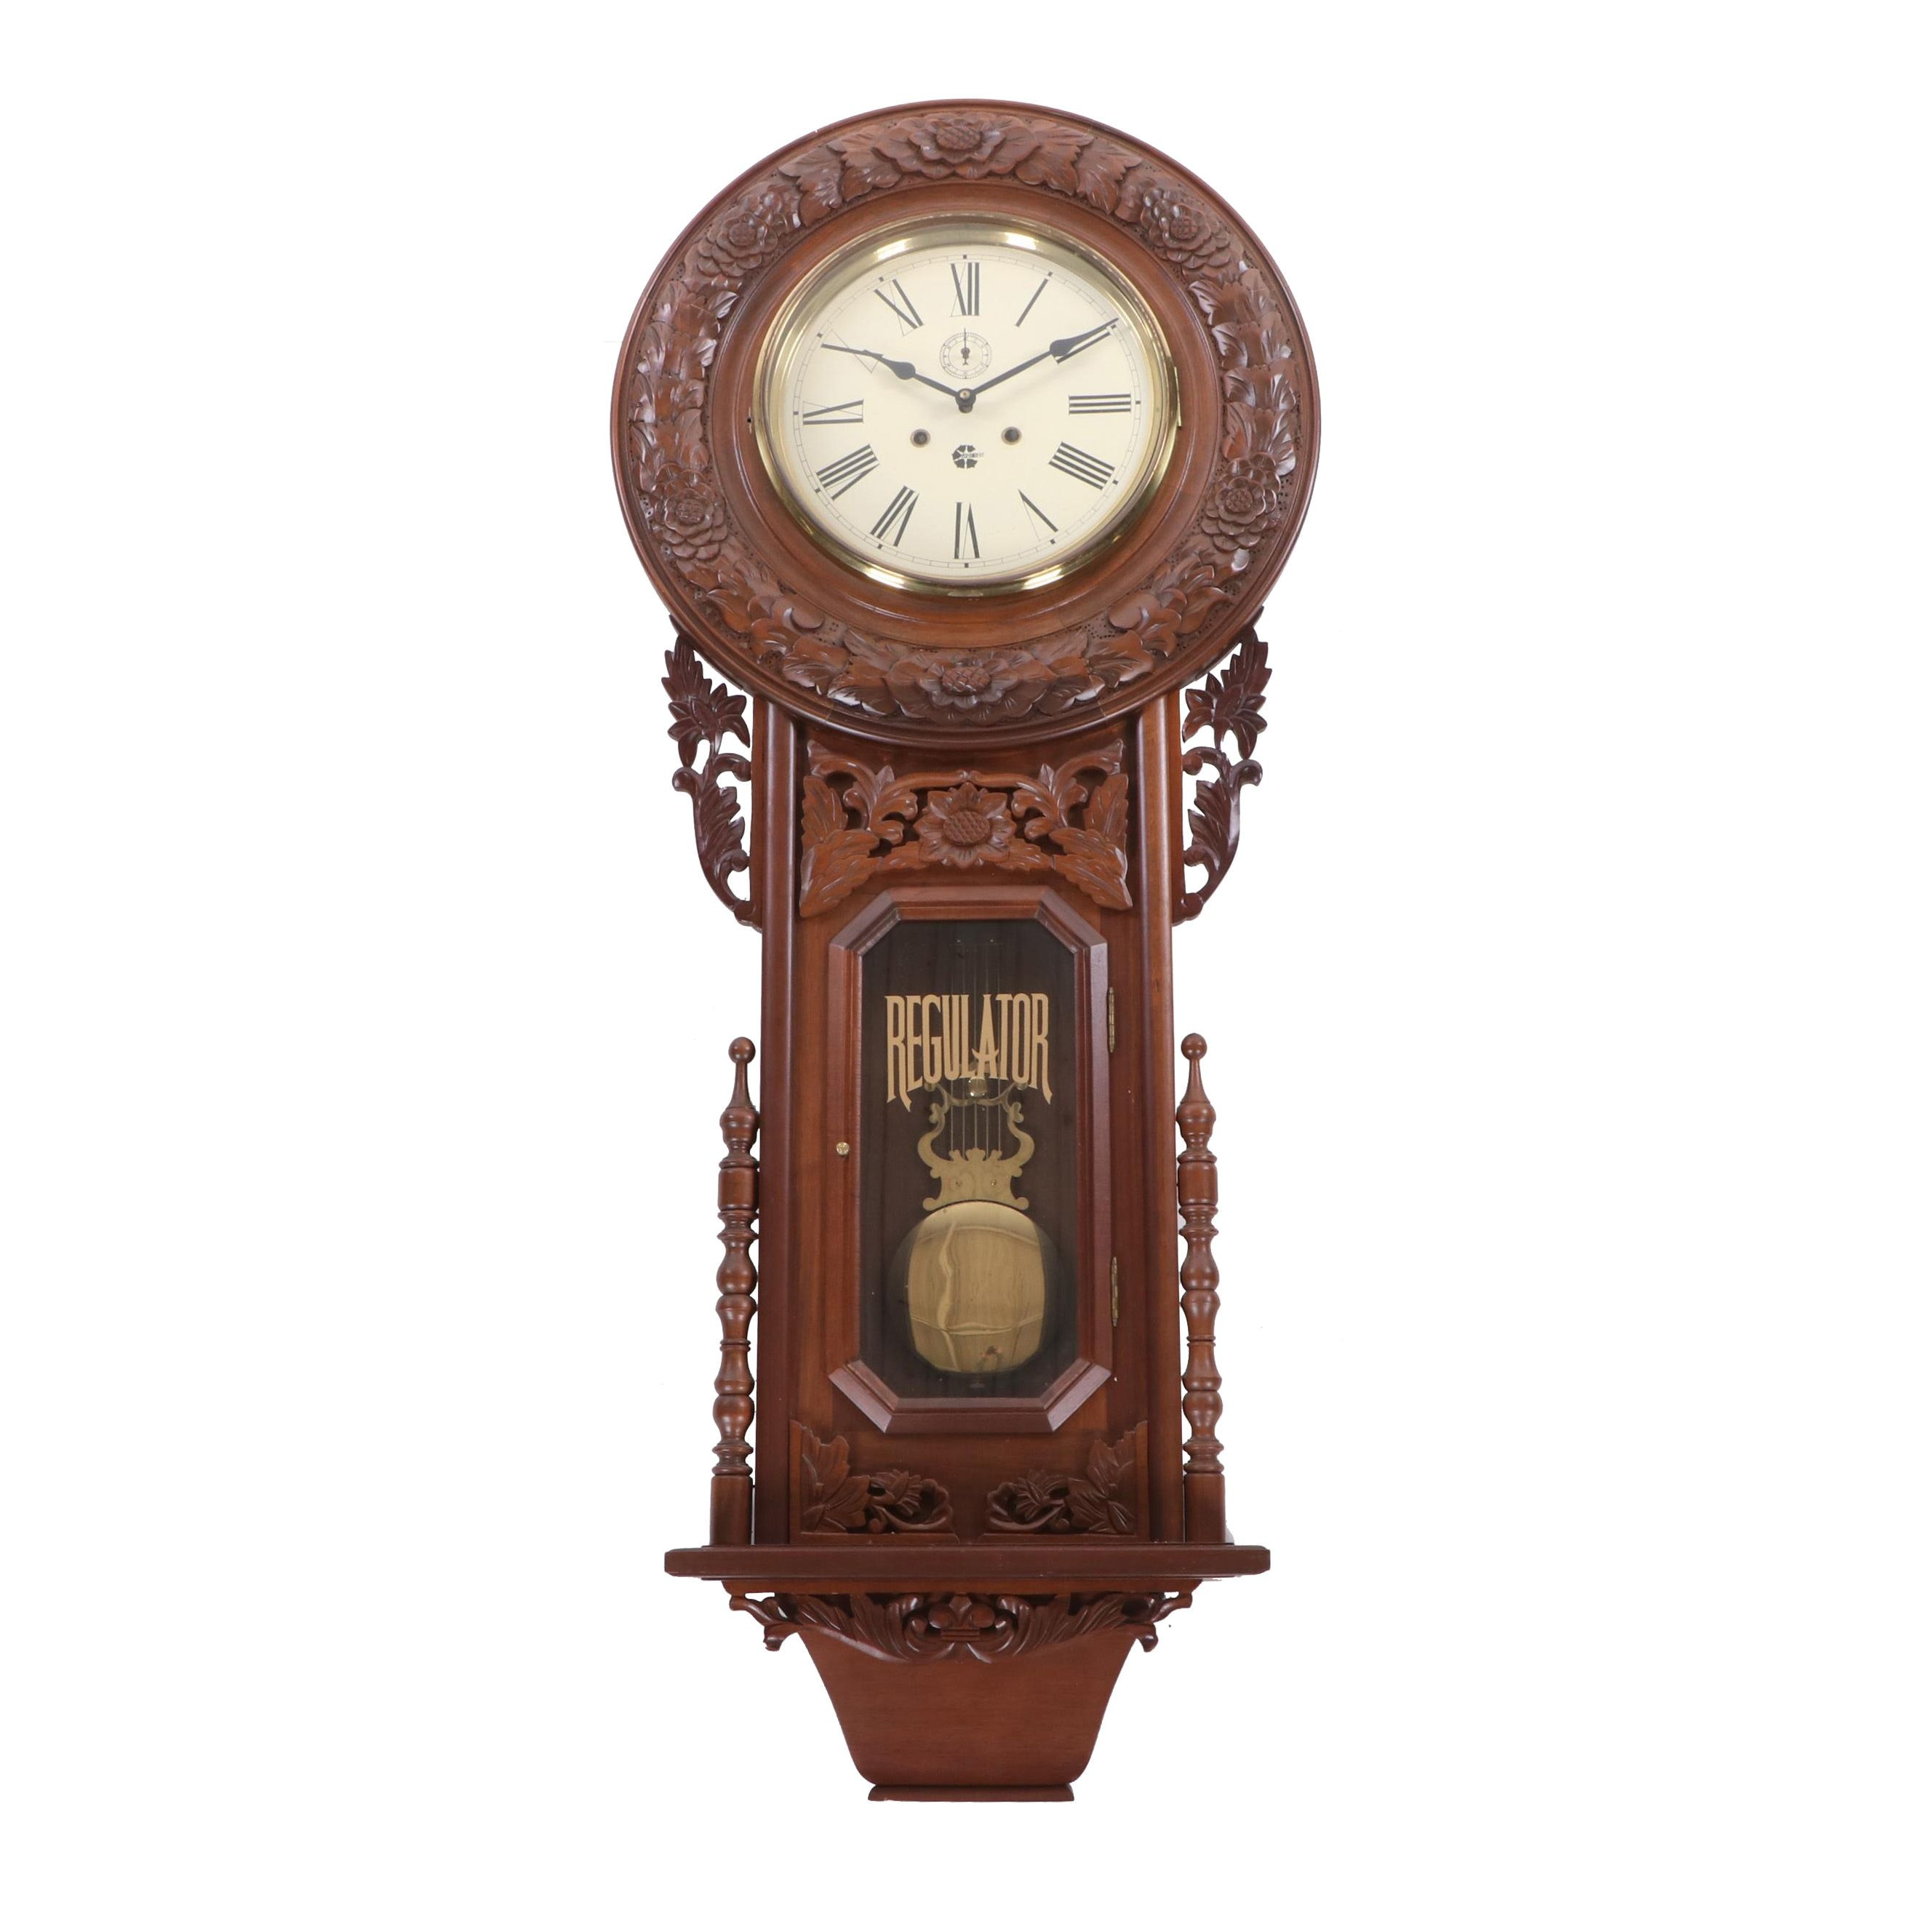 Vienna Style Westminster Chime Regulator Wall Clock